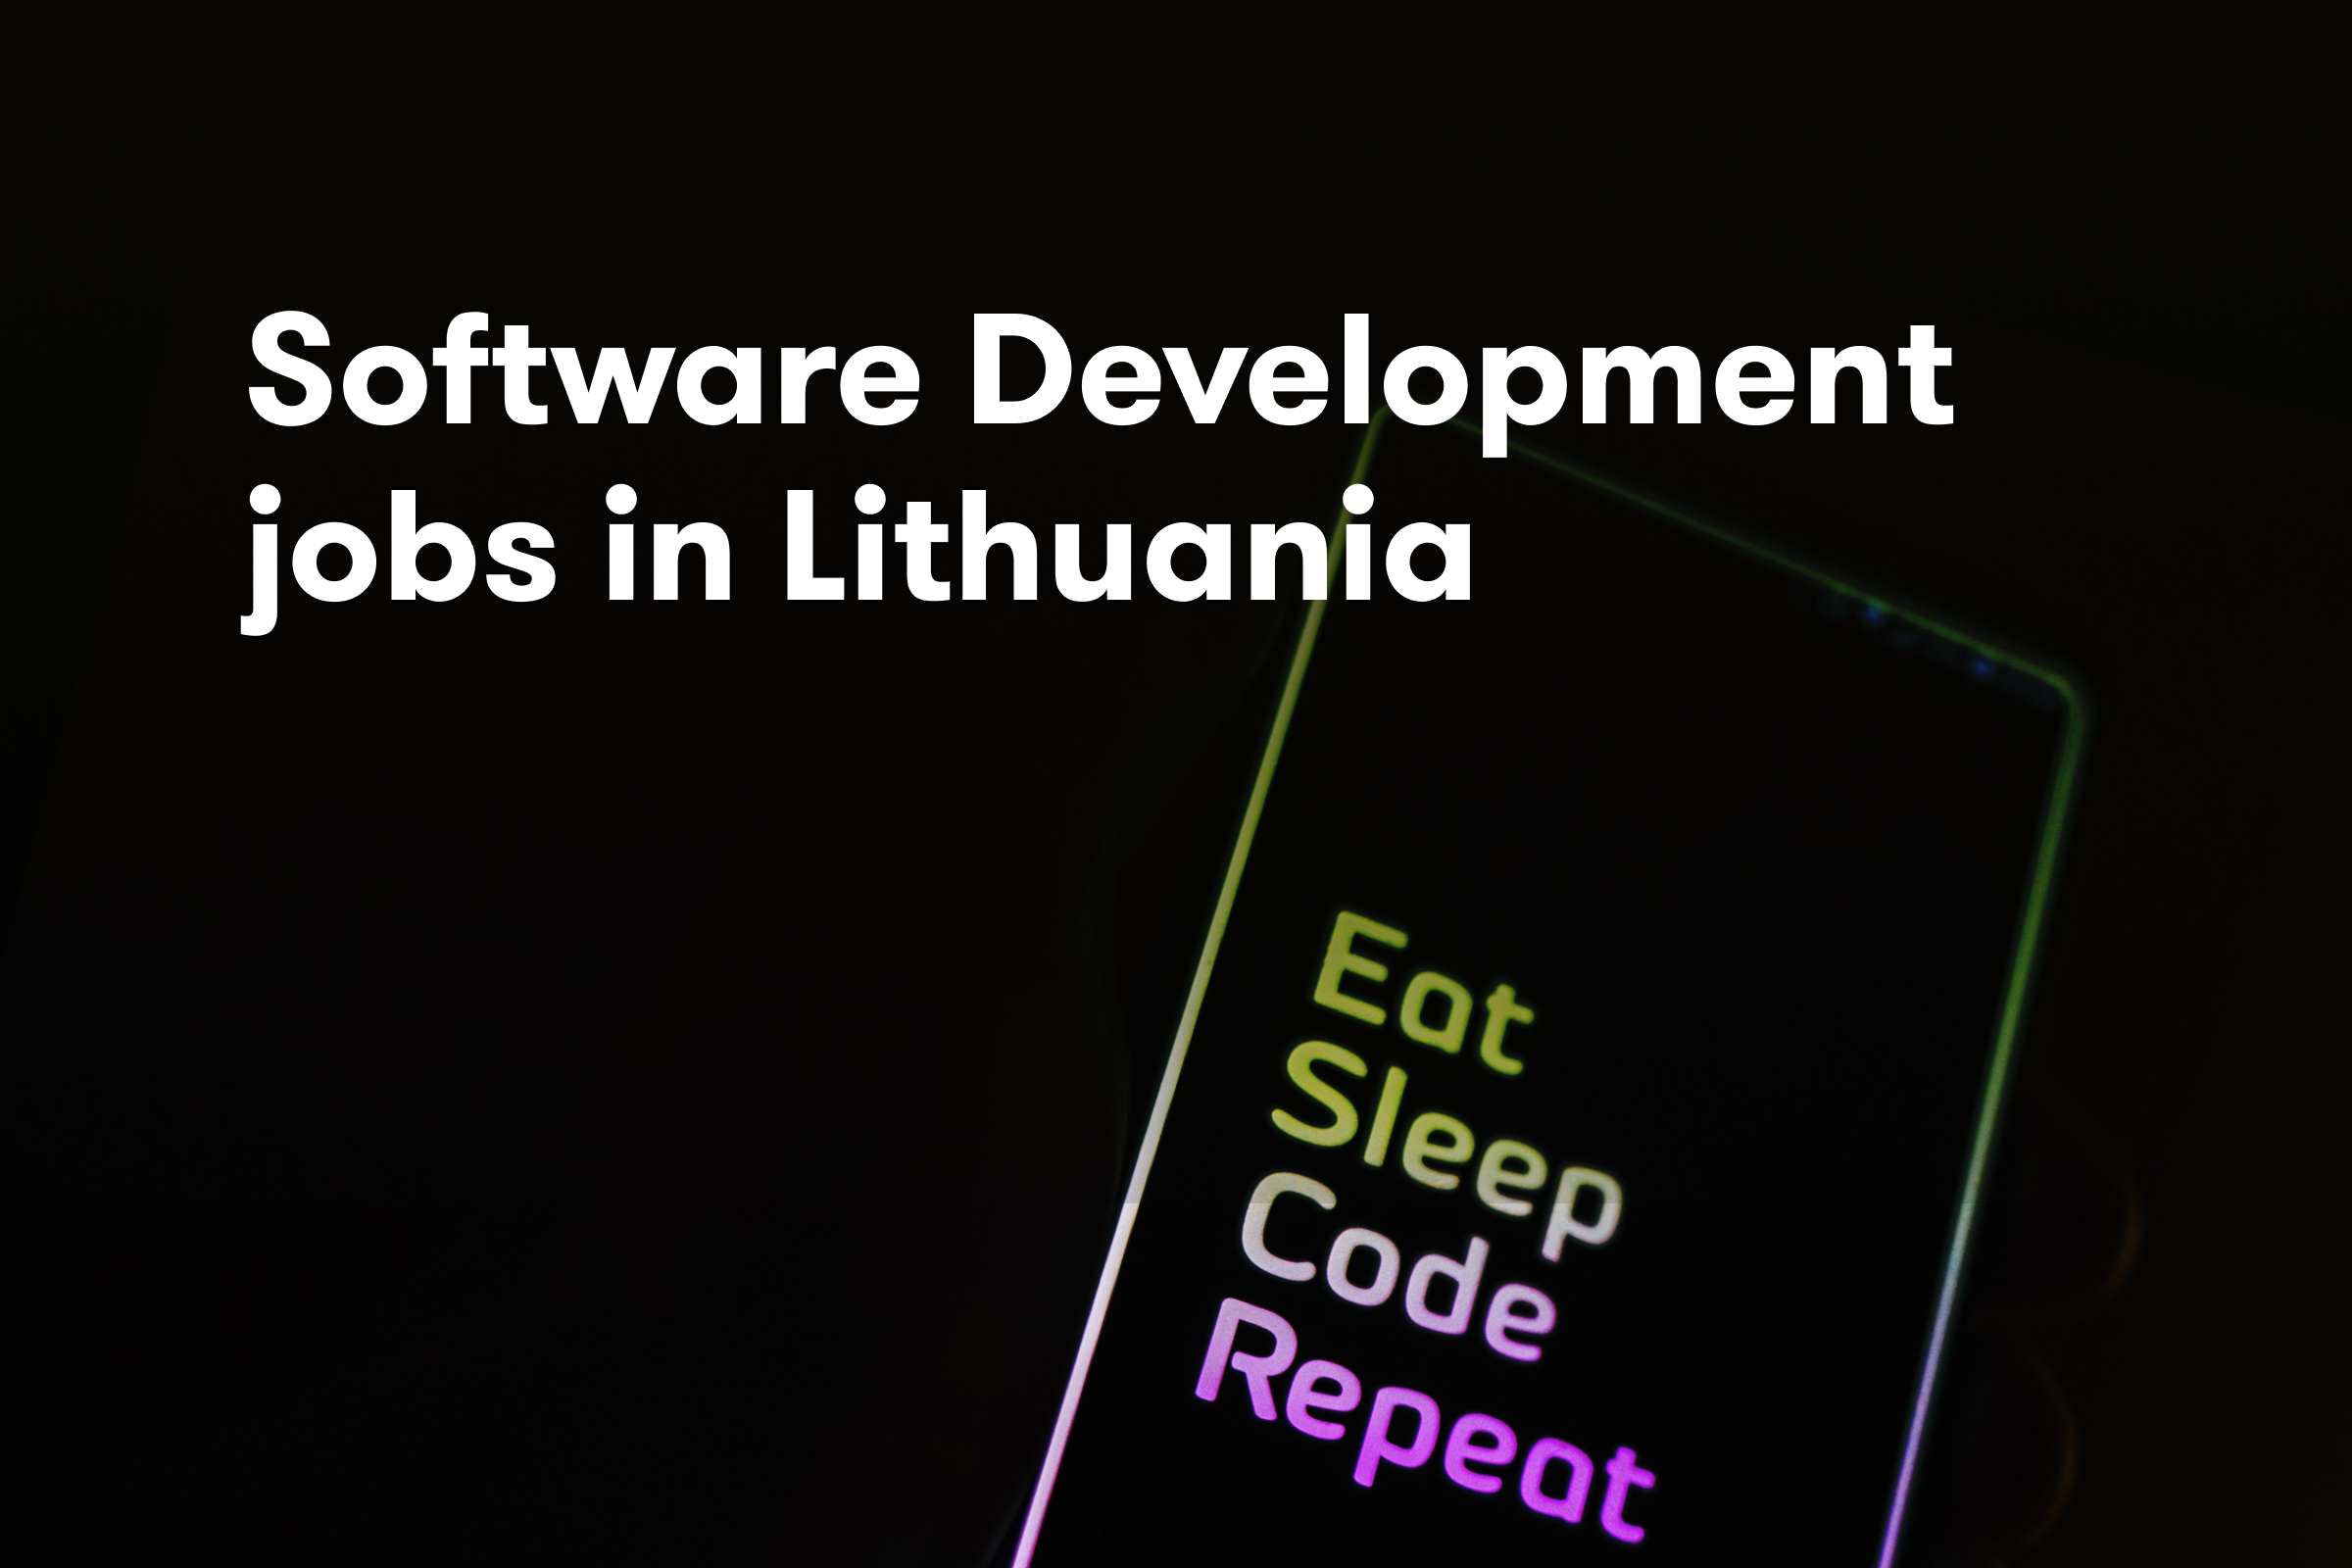 Software development jobs in Lithuania